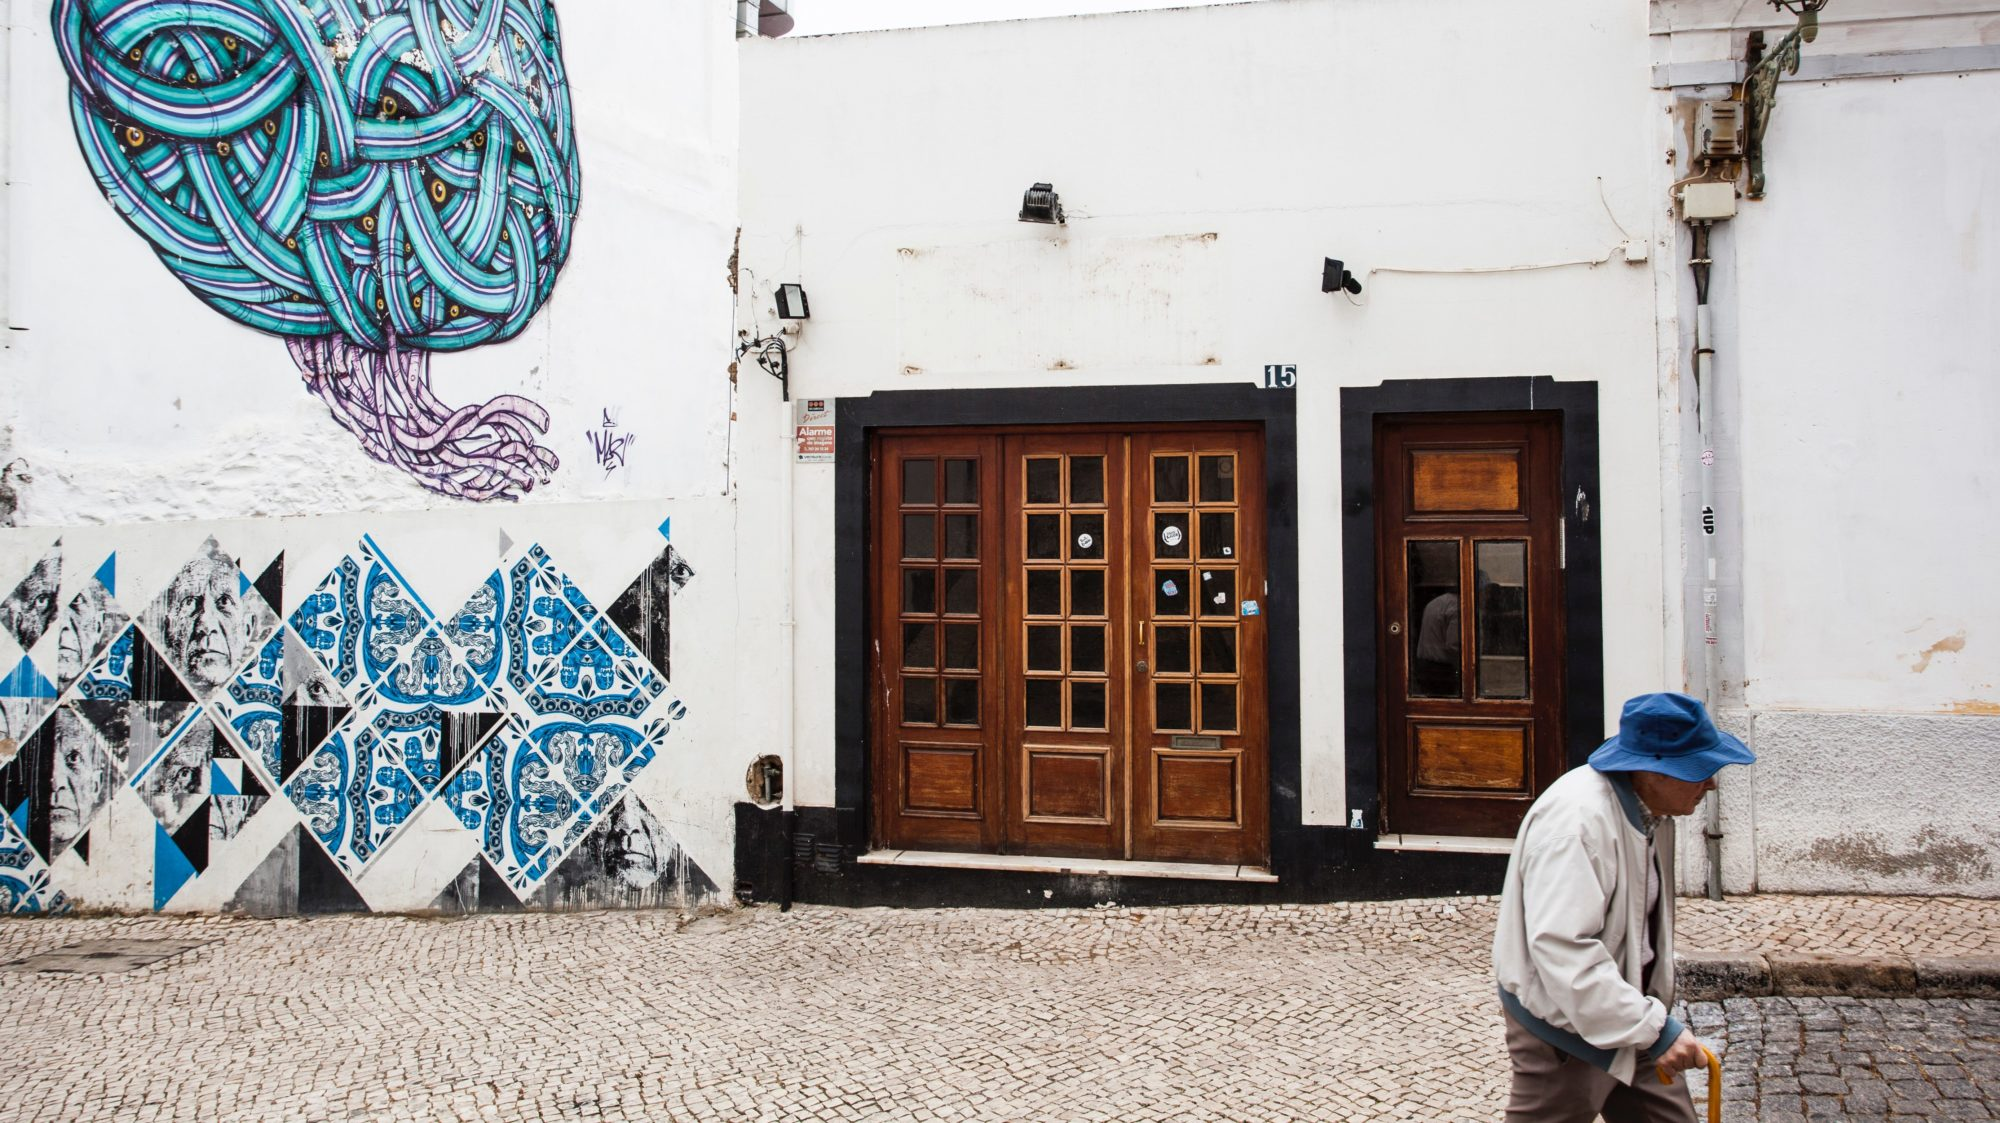 An older person walks past a building decorated with street art.